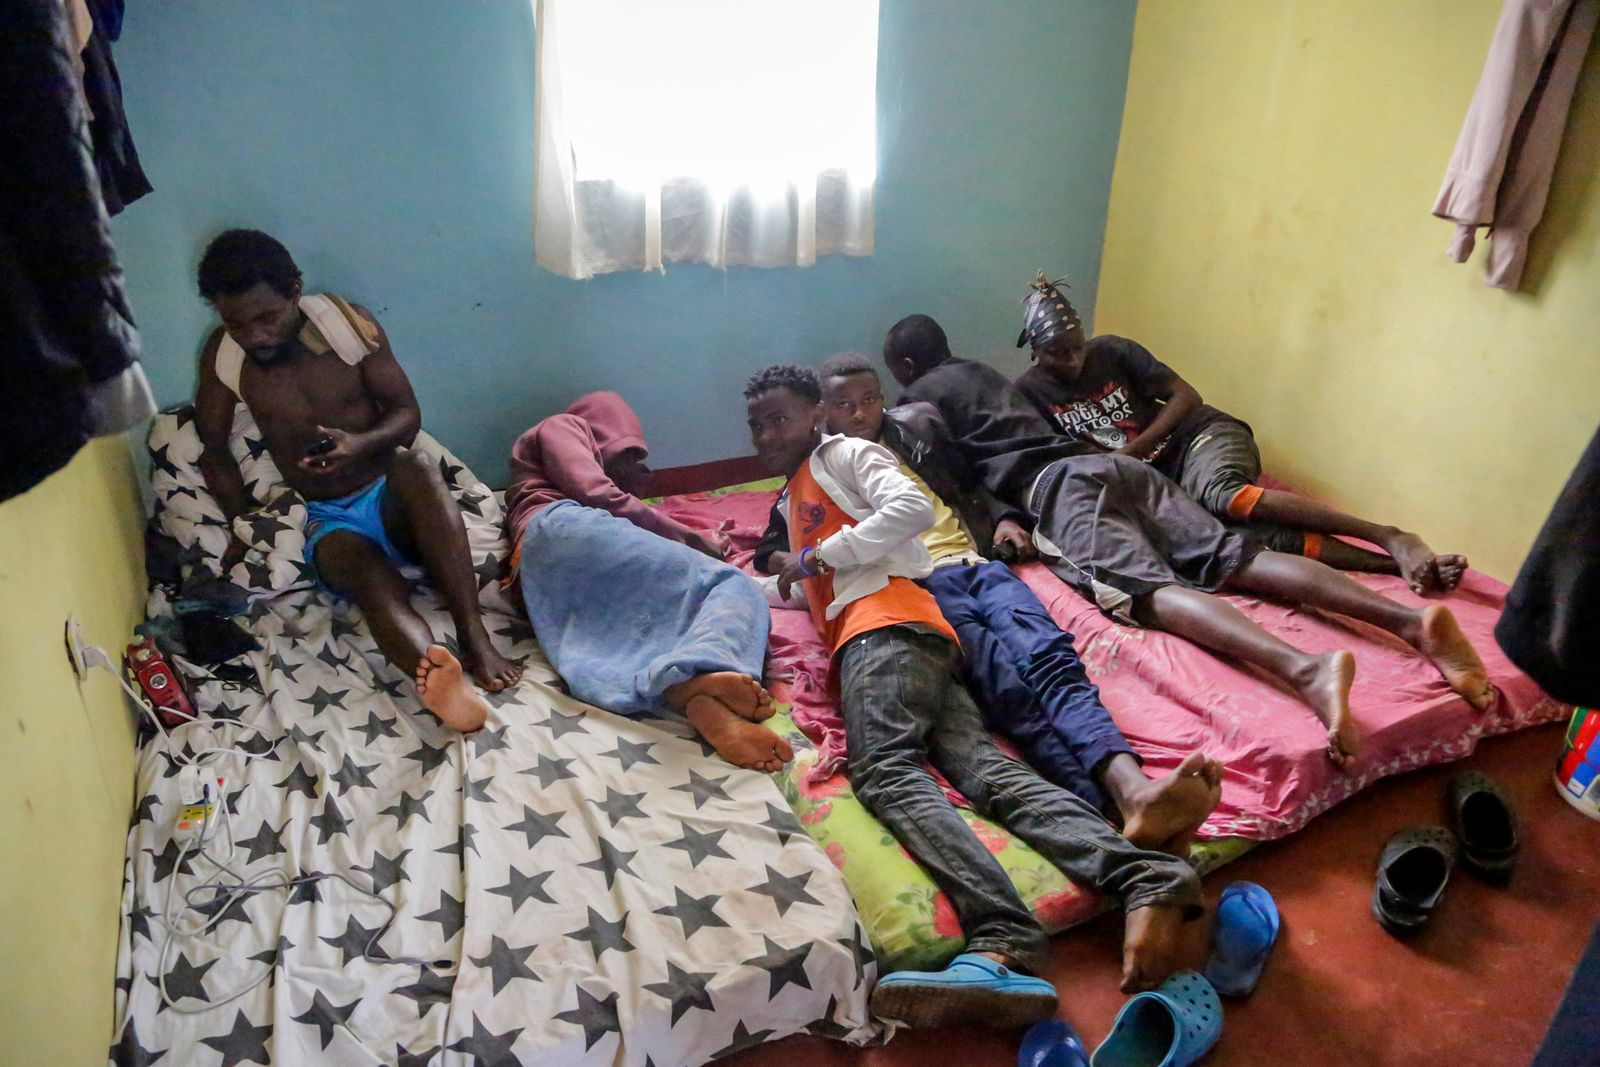 In this photo taken Tuesday, May 28, 2019, LGBT refugees from Burundi, Rwanda and Congo lie on a mattress in one of the rooms they share in the house where they take shelter in a low-income neighborhood of the capital Nairobi, Kenya.{ } (AP Photo/Khalil Senosi)